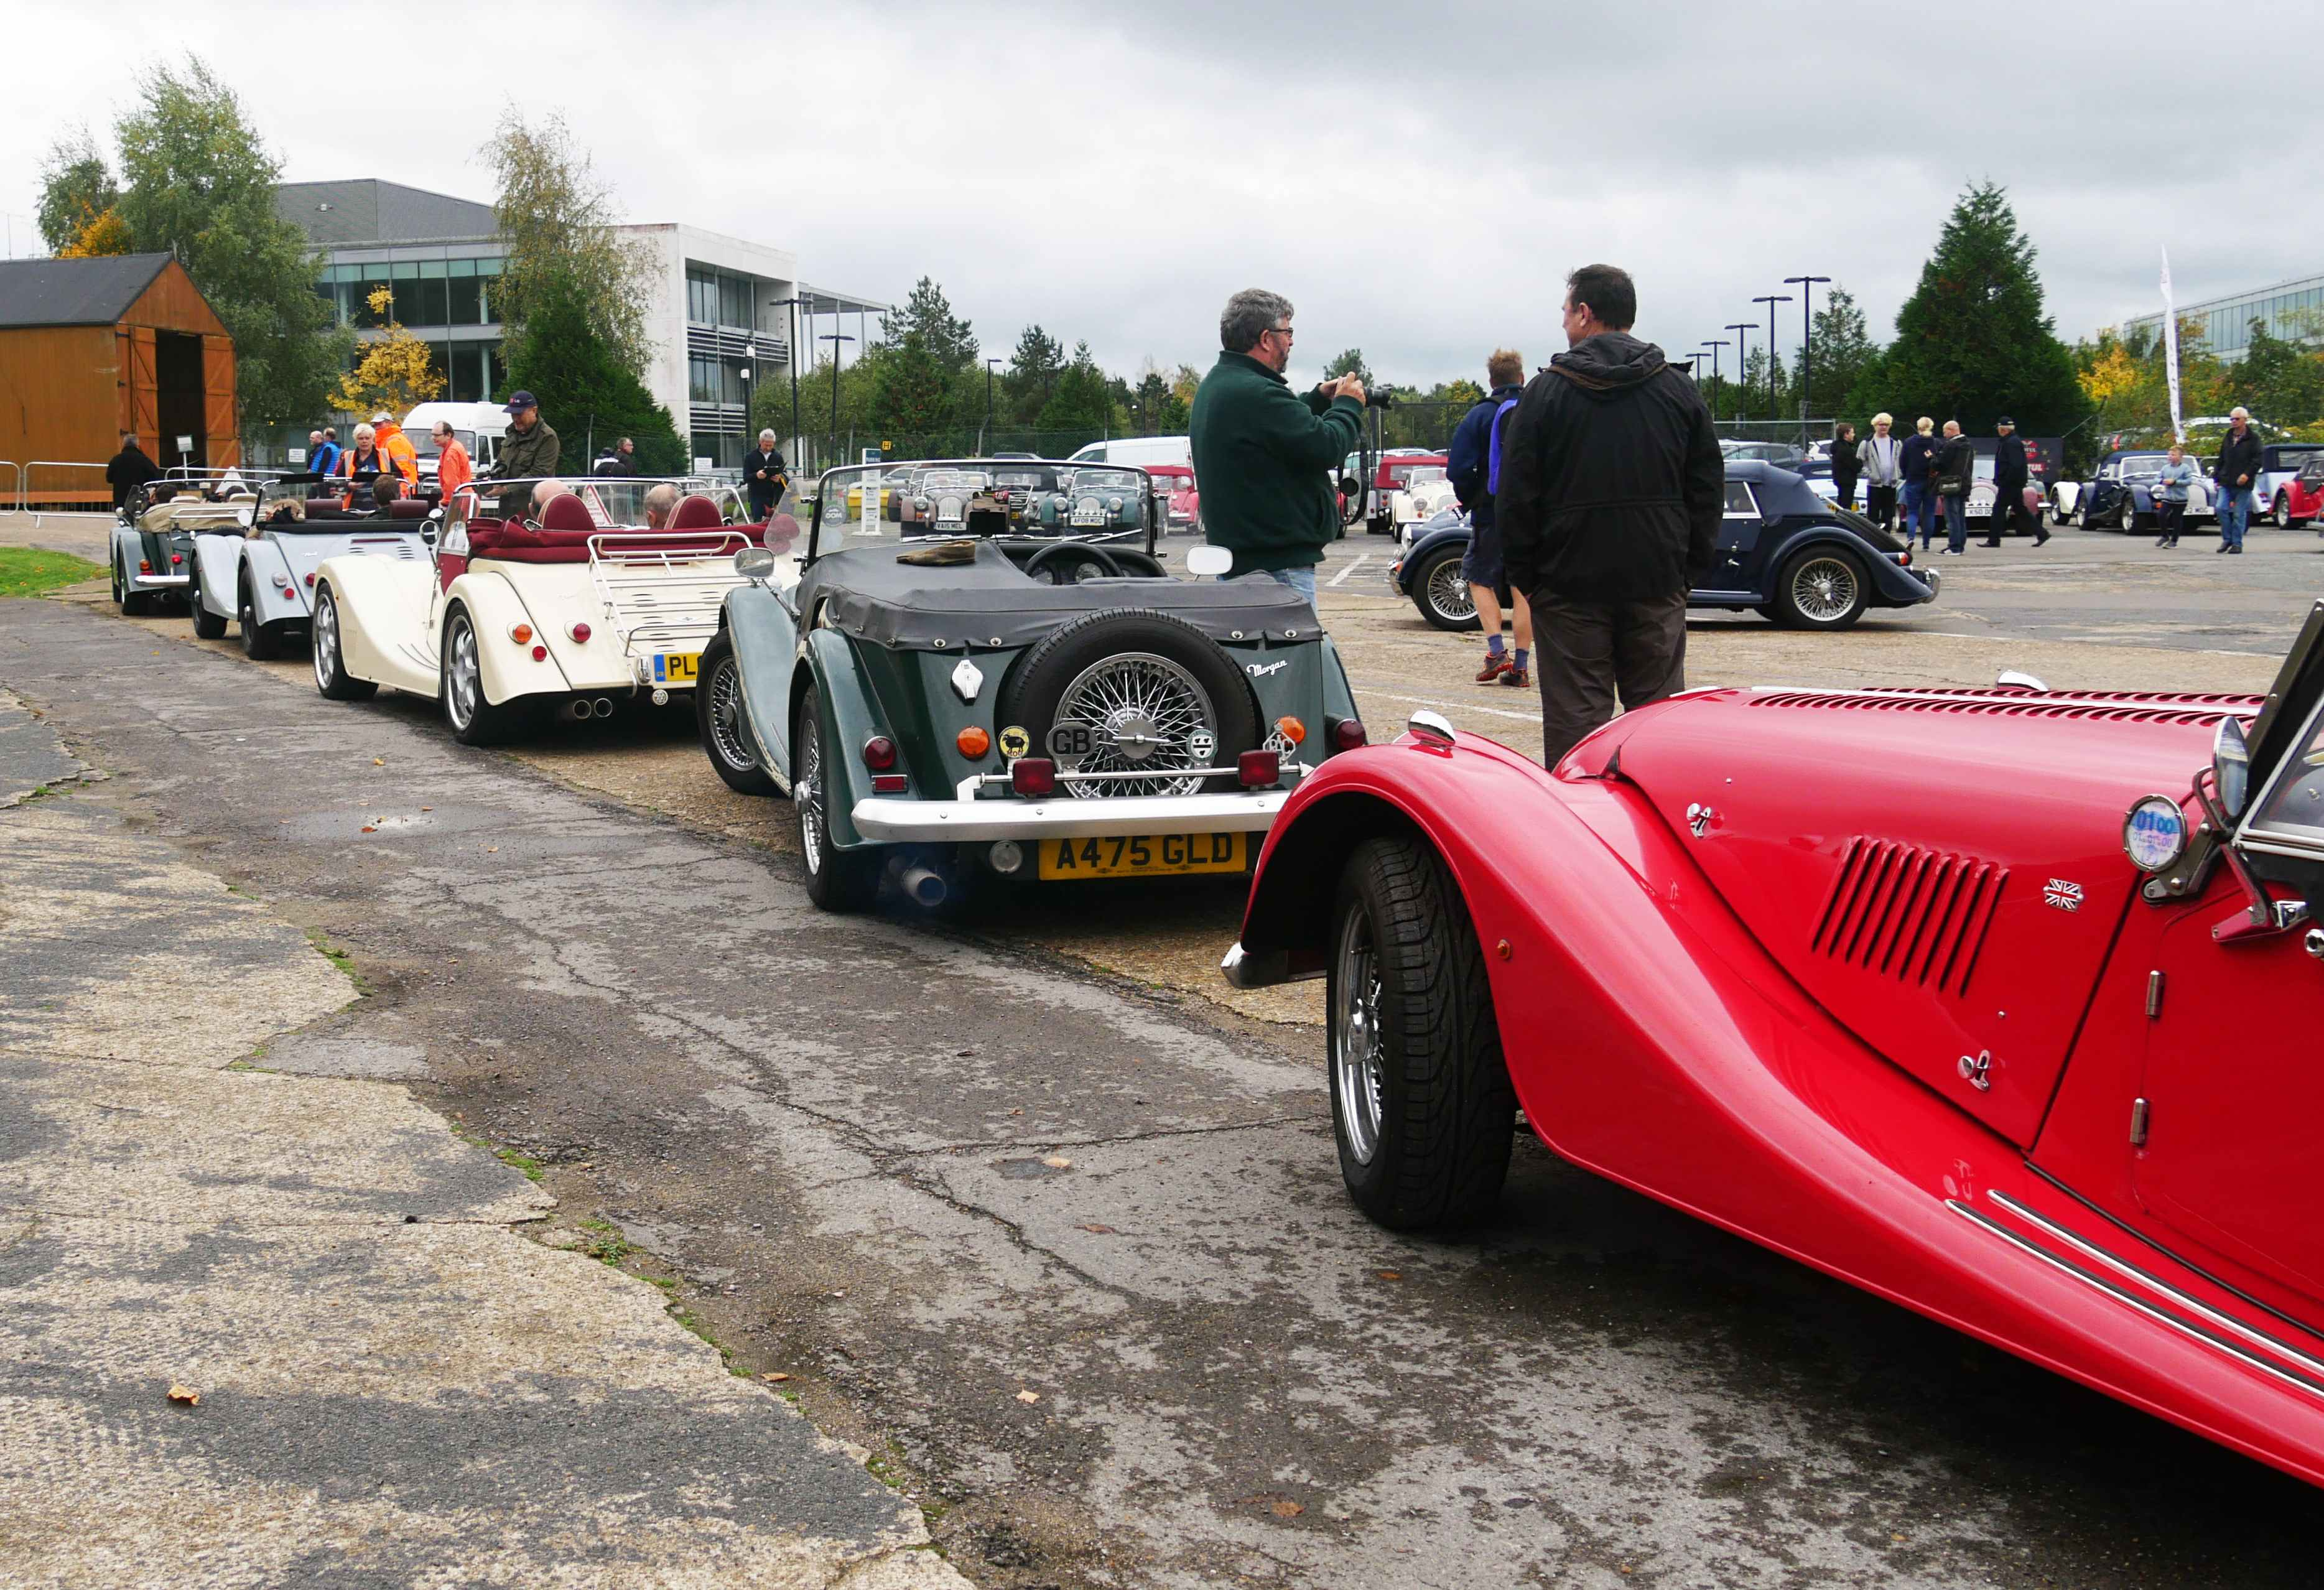 Morgans in a line ready for the hill, with the drivers taking it easy.